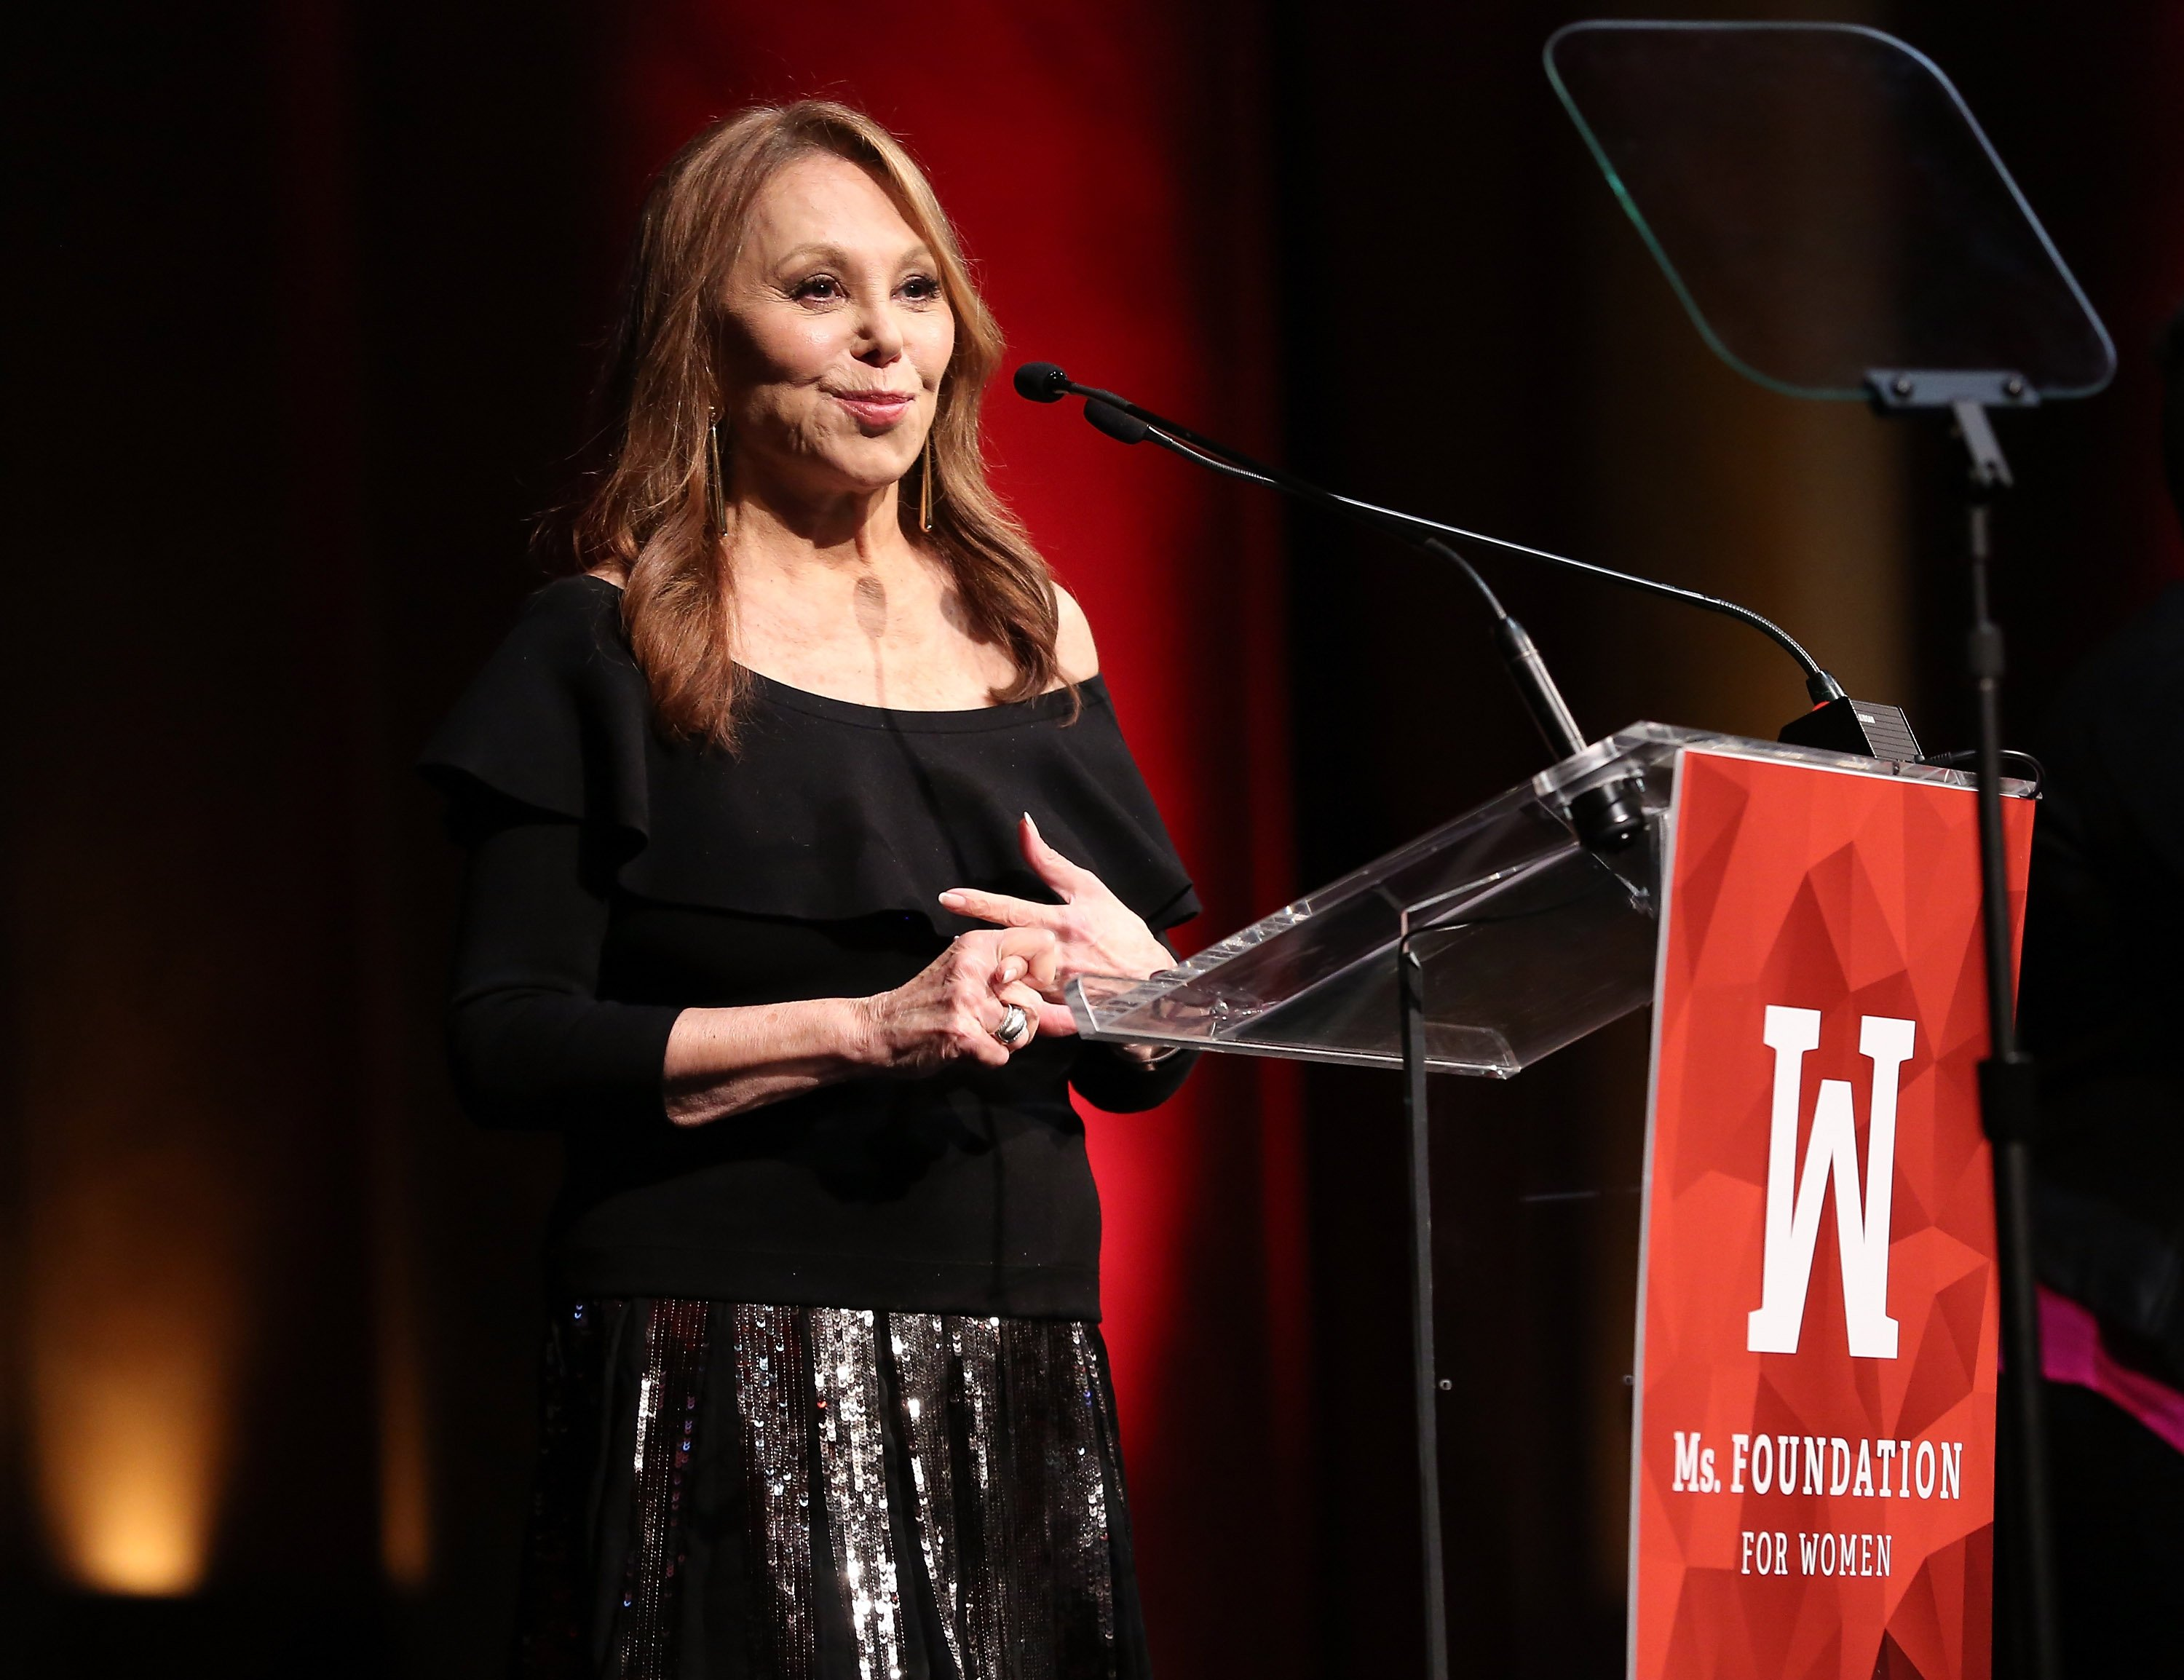 Marlo Thomas speaks at the Ms Foundation 30th Annual Gloria Awards in New York City on May 3, 2018 | Photo: Getty Images